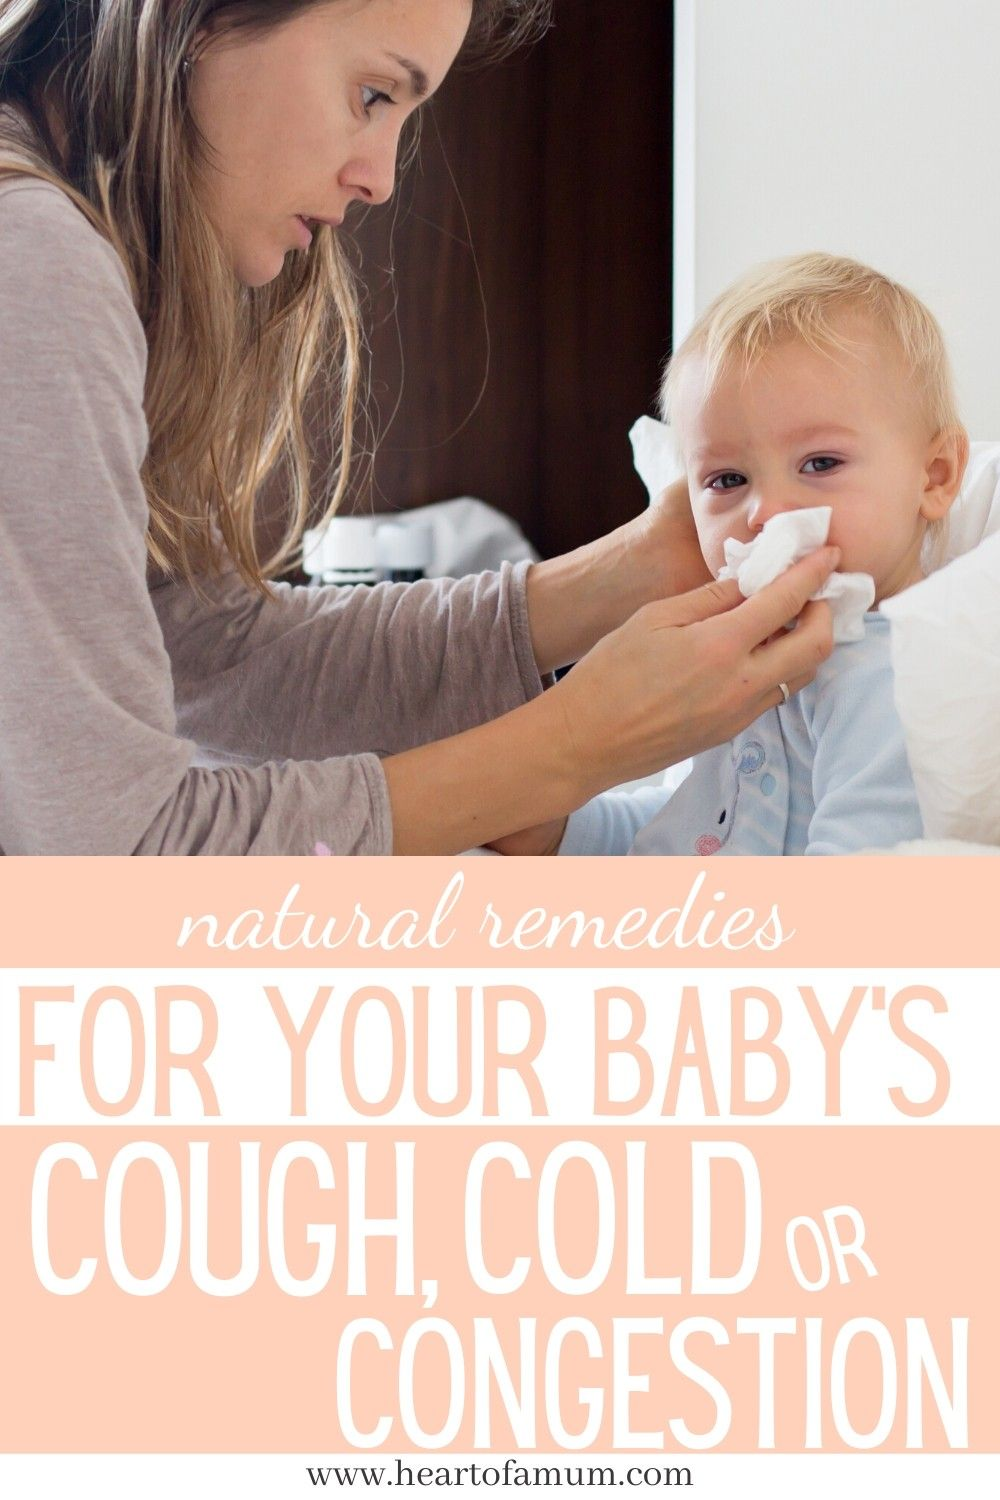 How To Use Natural Remedies For A Sick Baby With A Cold Sick Baby Baby Cough Baby Runny Nose